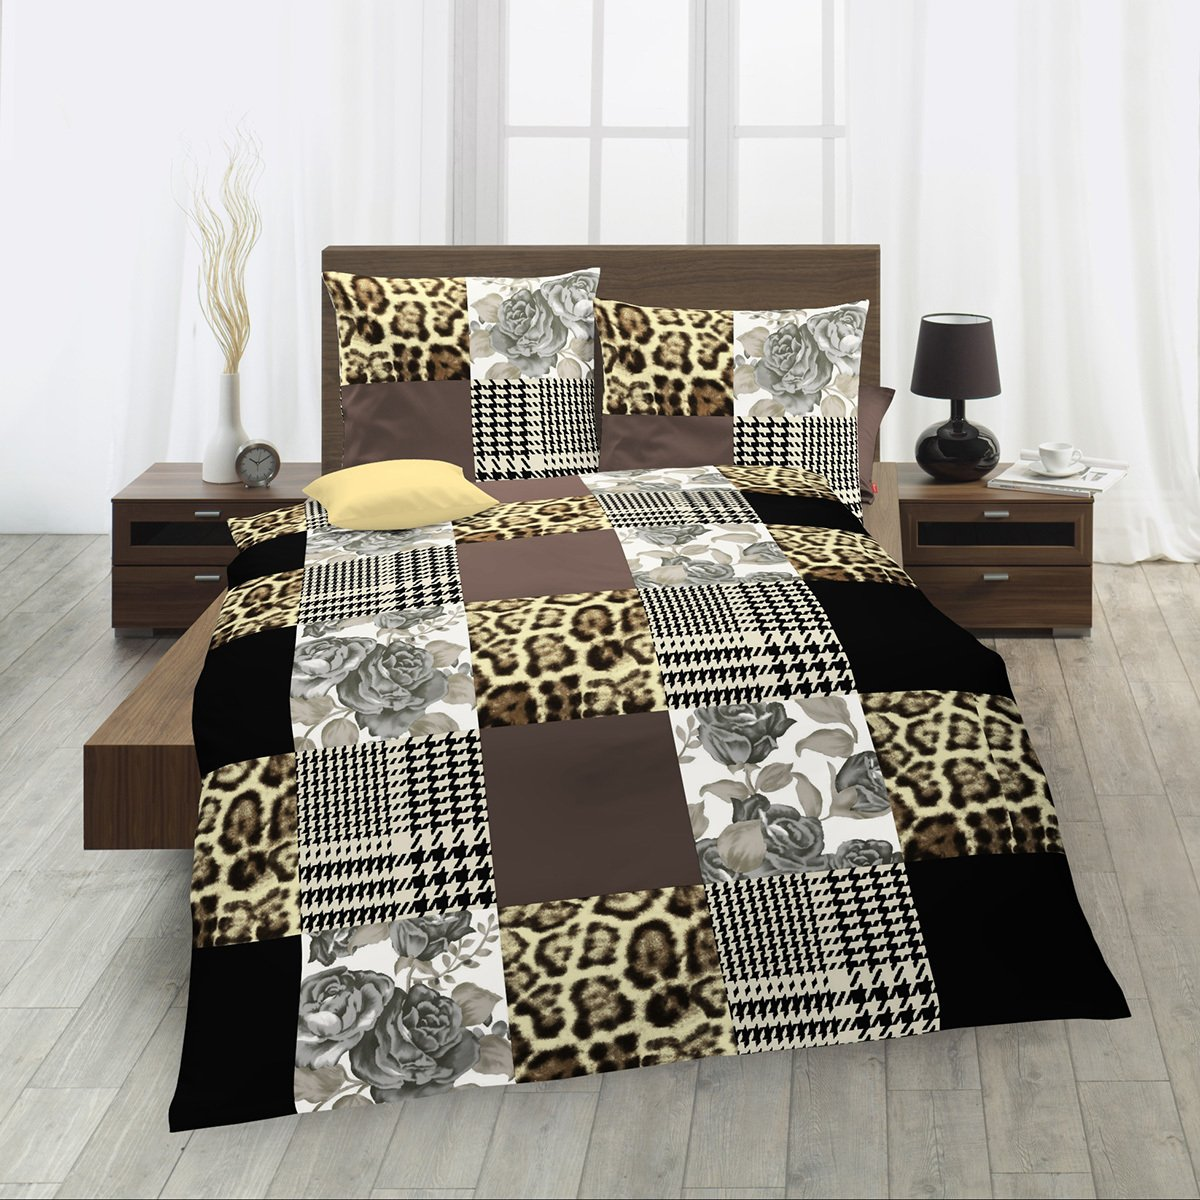 fleuresse biber bettw sche davos leo g nstig online kaufen bei bettwaren shop. Black Bedroom Furniture Sets. Home Design Ideas